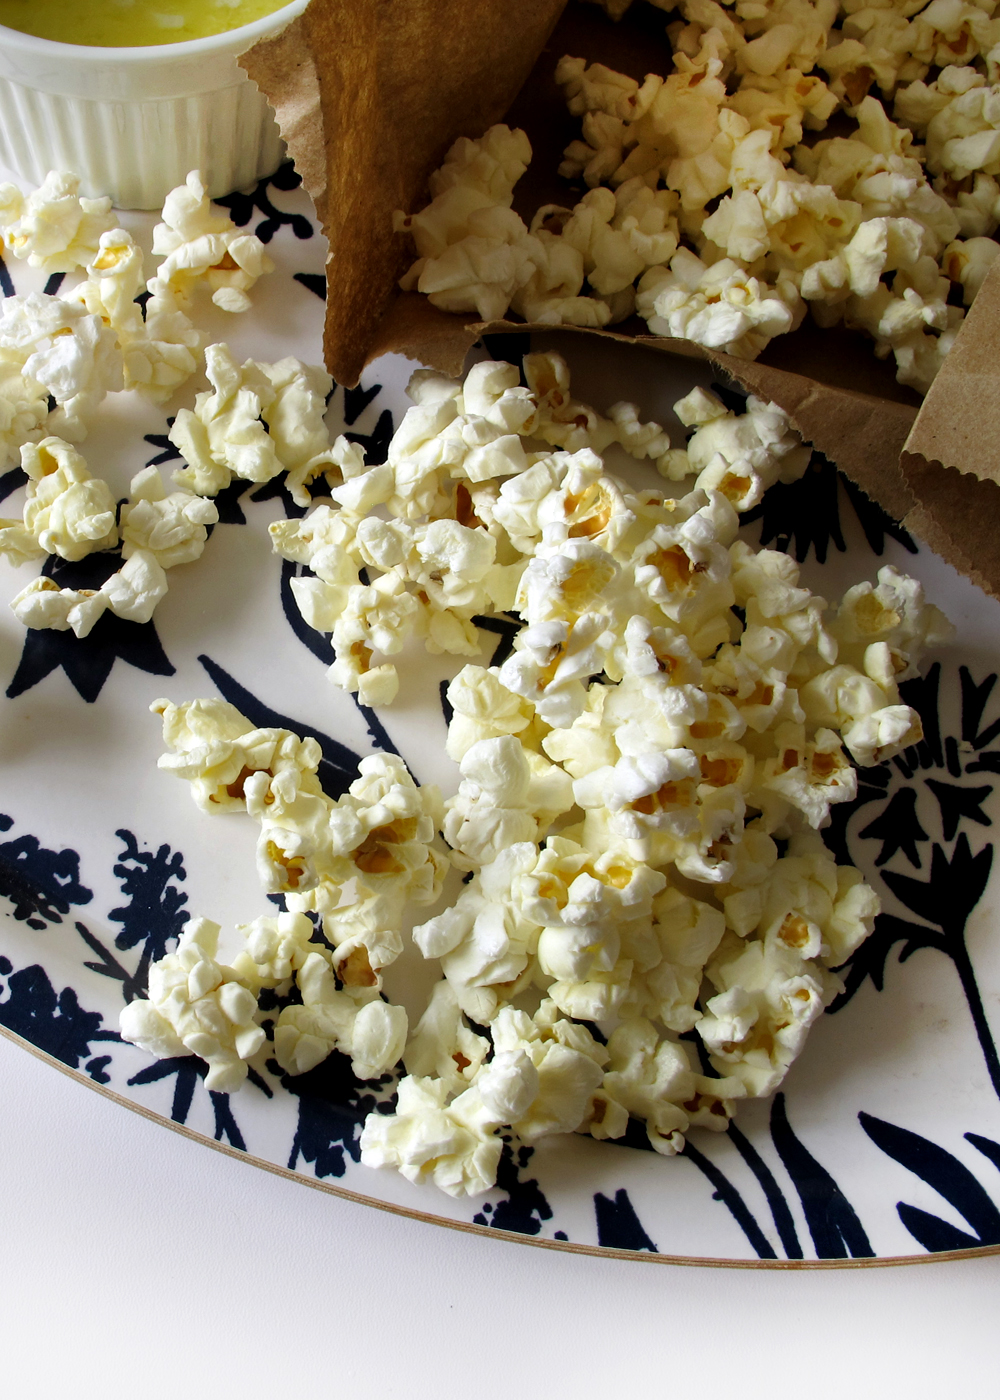 make your popcorn in a brown paper bag! an affordable afternoon snack